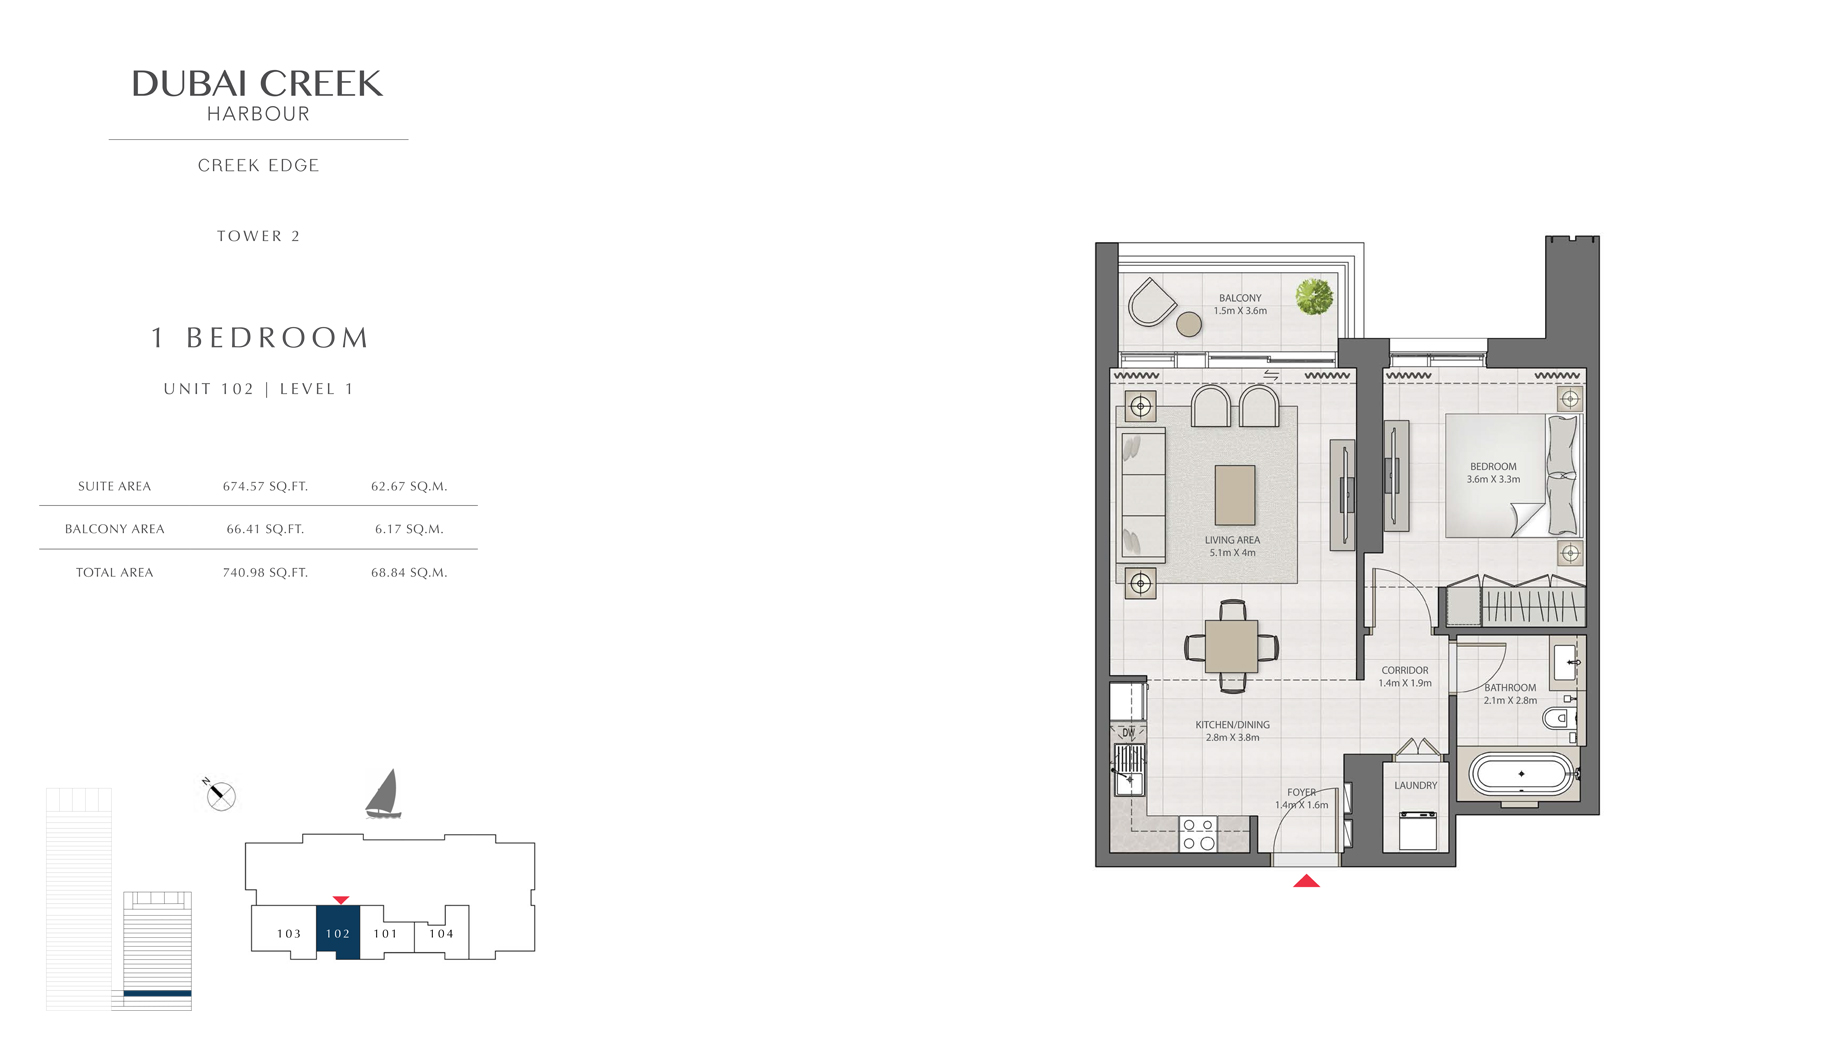 1 Bedroom Tower 2 Unit 102 Level 1 Size 740 sq.ft